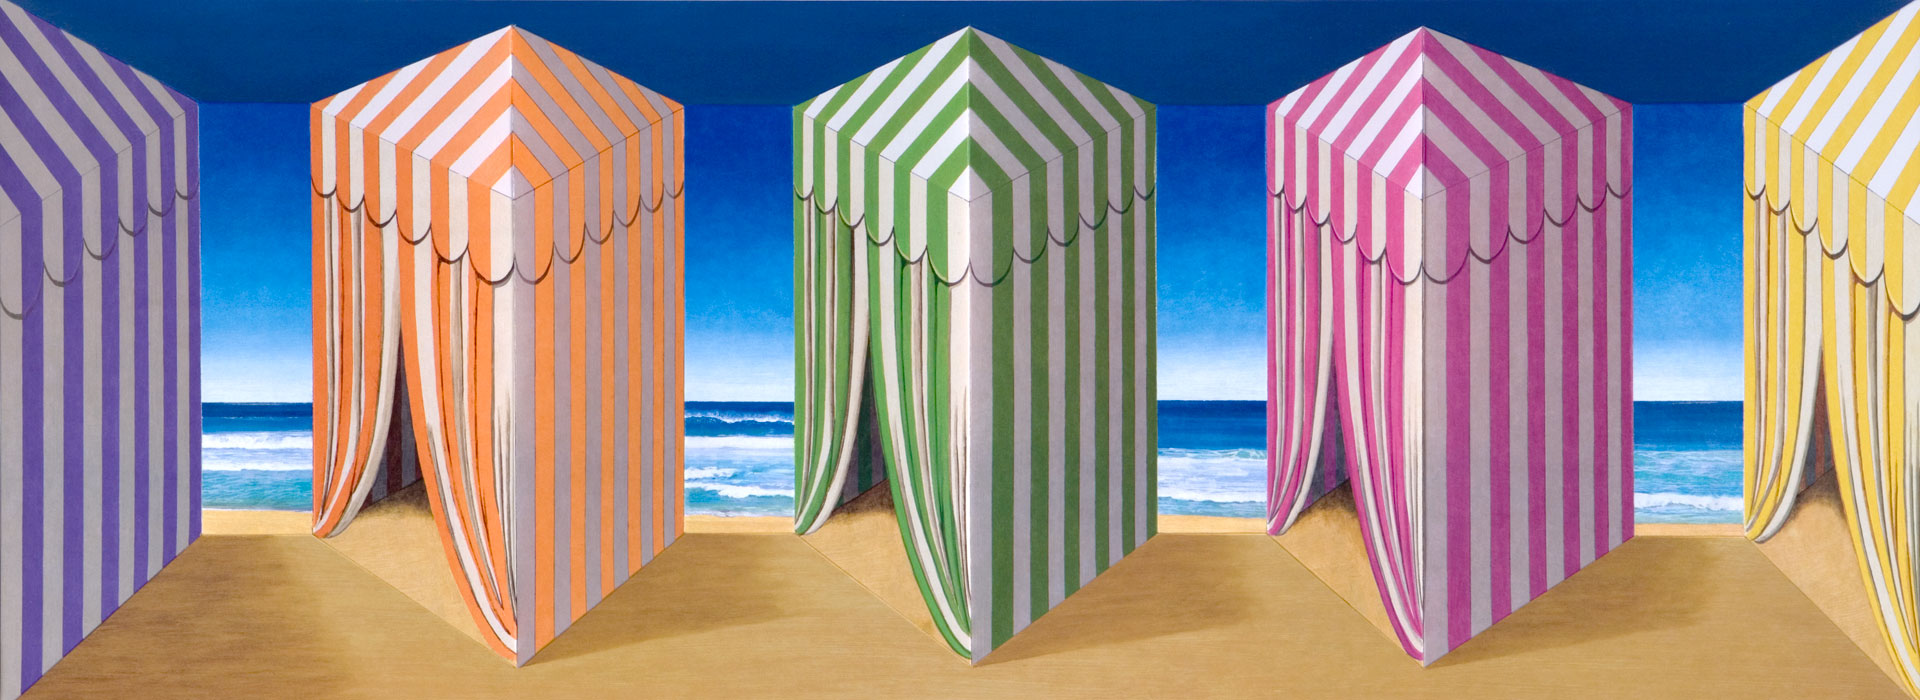 In Tents <p>2005 | Edition 45 | 44.5 x 96 x 15 cm / 17½ x 37¾ x 6 in</p>